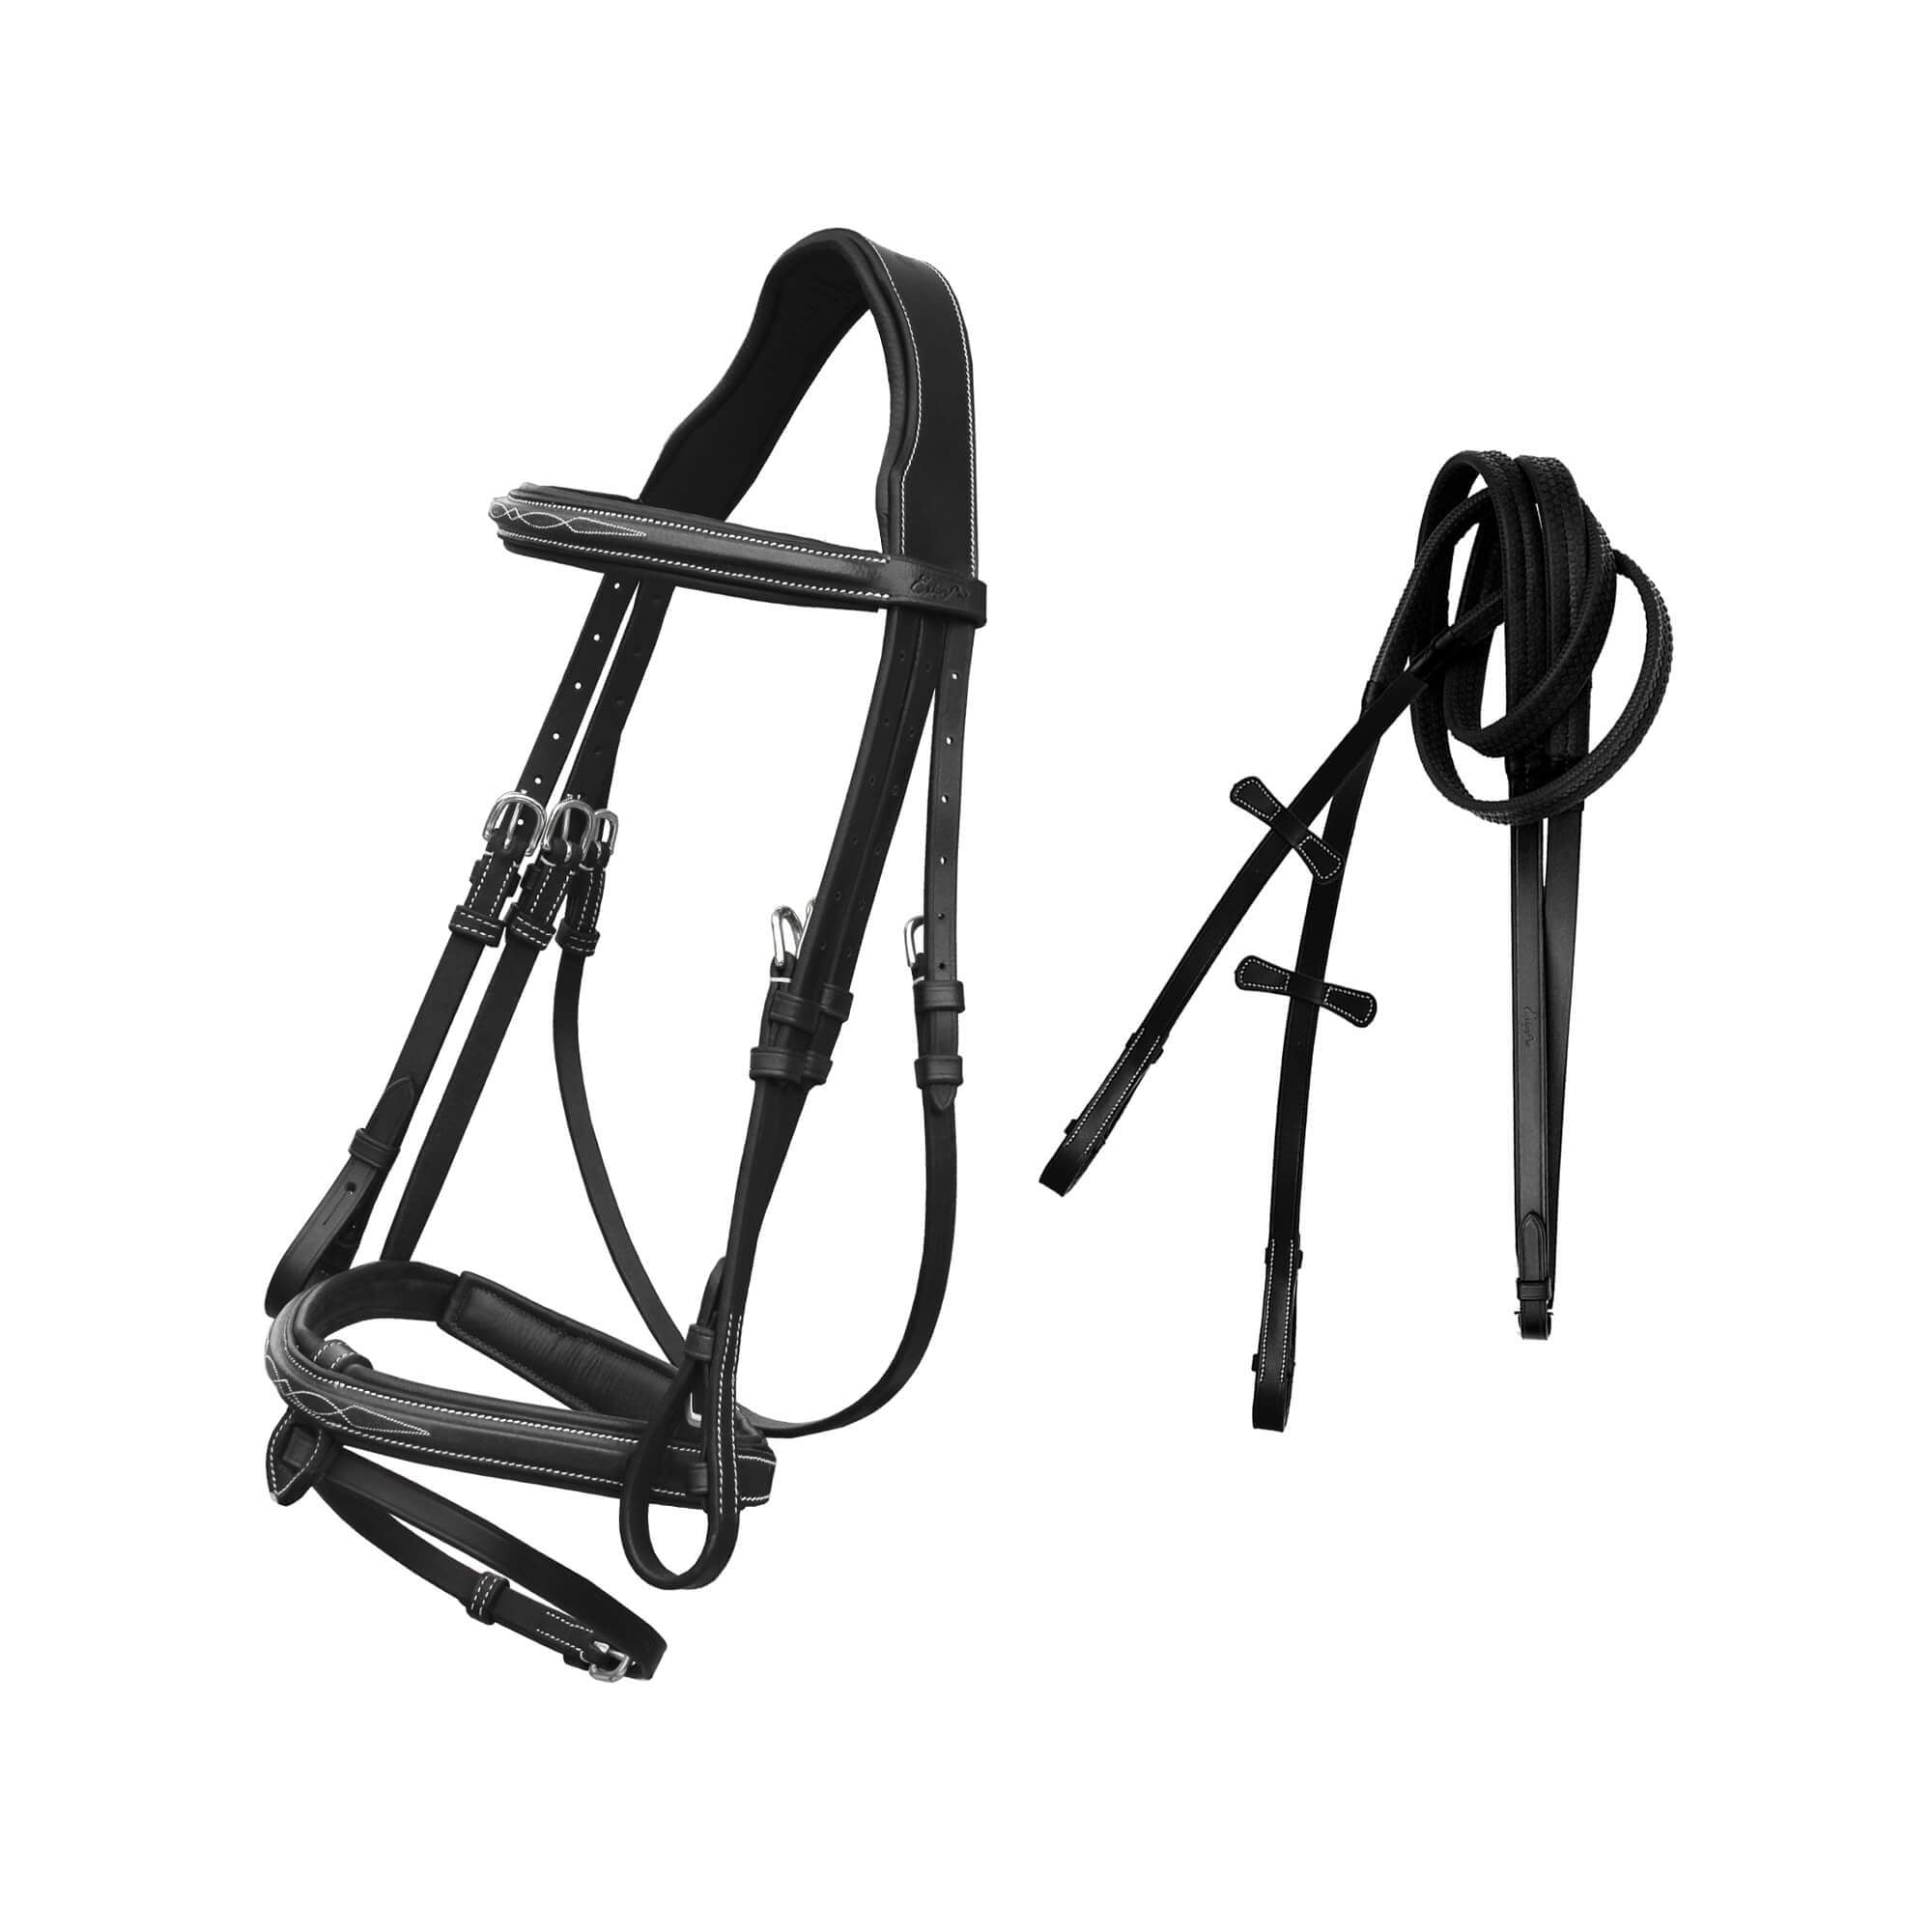 English Bridles-ExionPro Designer Stitched Snaffle Bridle With Mono Crown Piece & Rubber Reins-Bridles and Reins